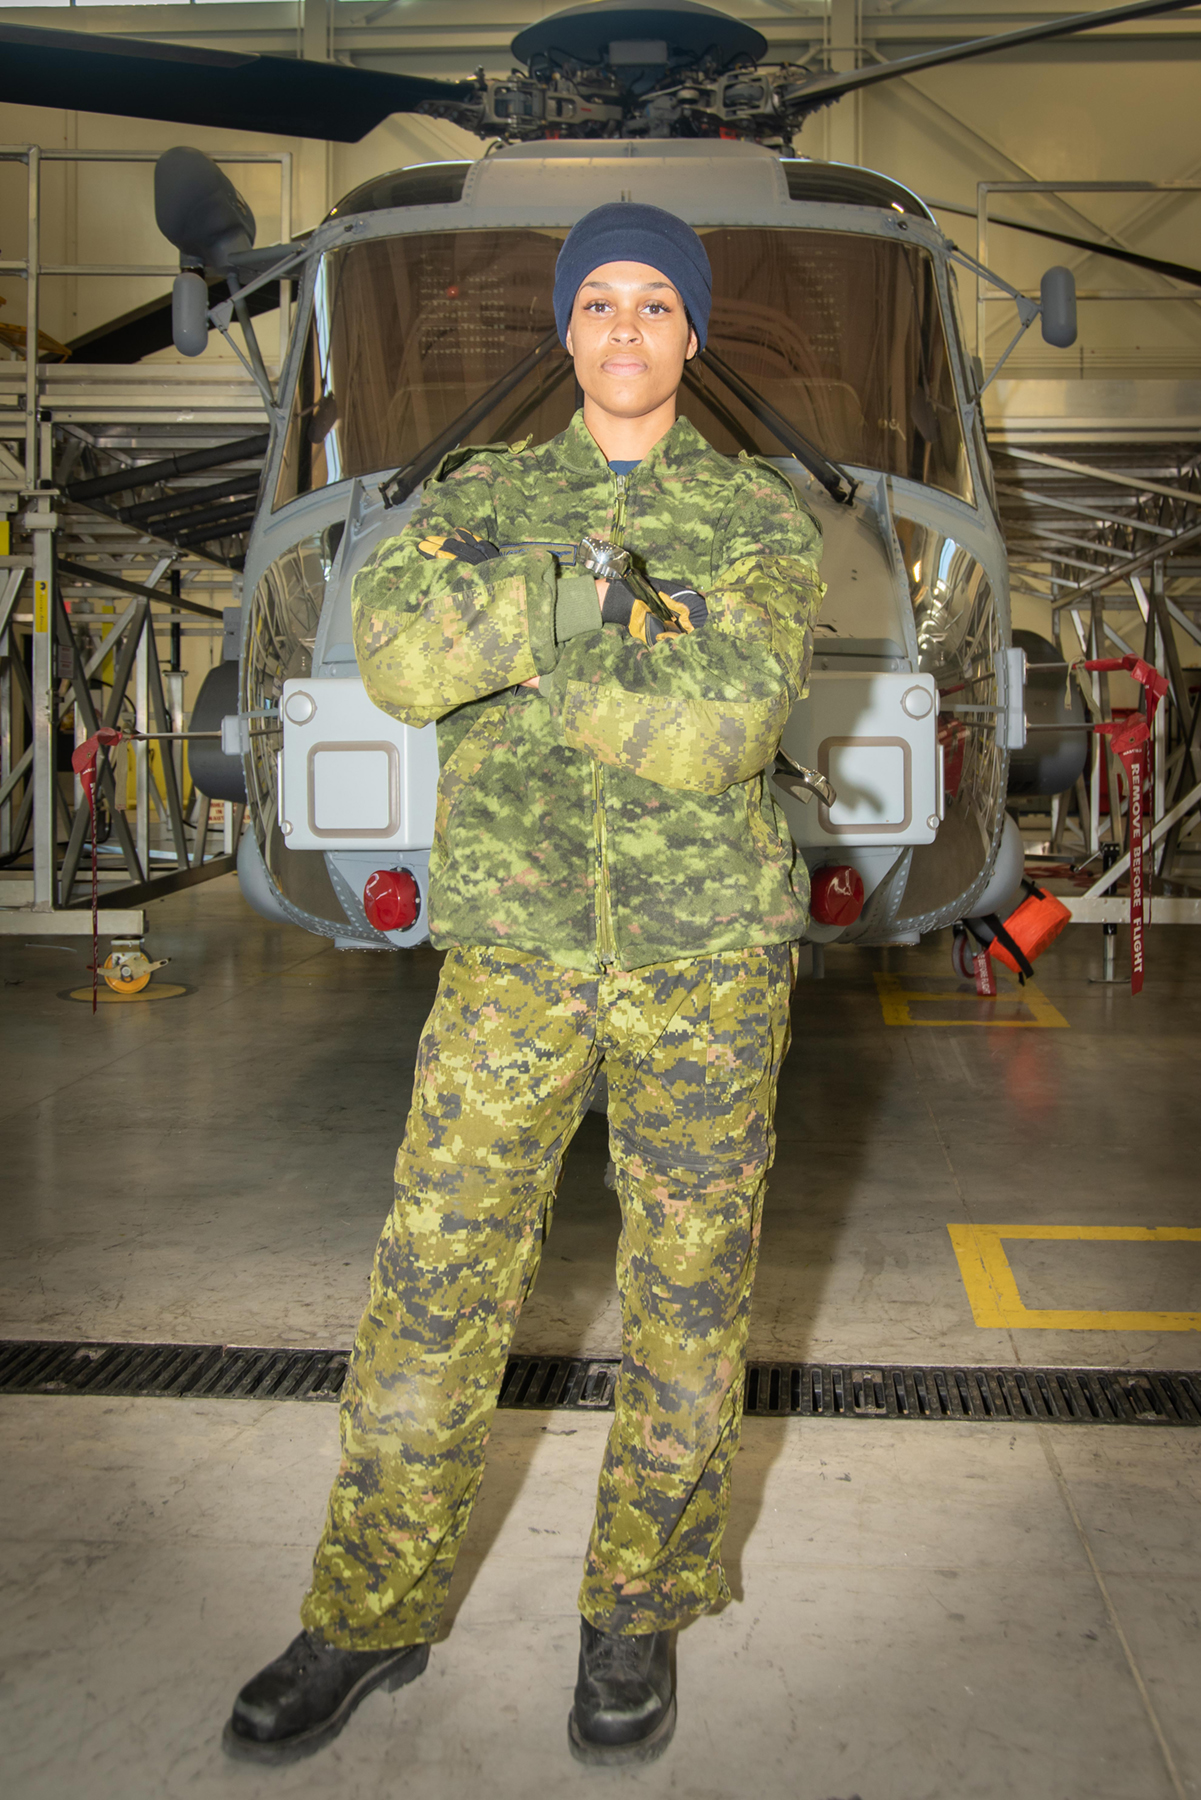 12 Wing member Corporal Caylen Dorrington stands in front of one of the RCAF's new CH-148 Cyclone helicopters. PHOTO: Leading Seaman Brad Upshall